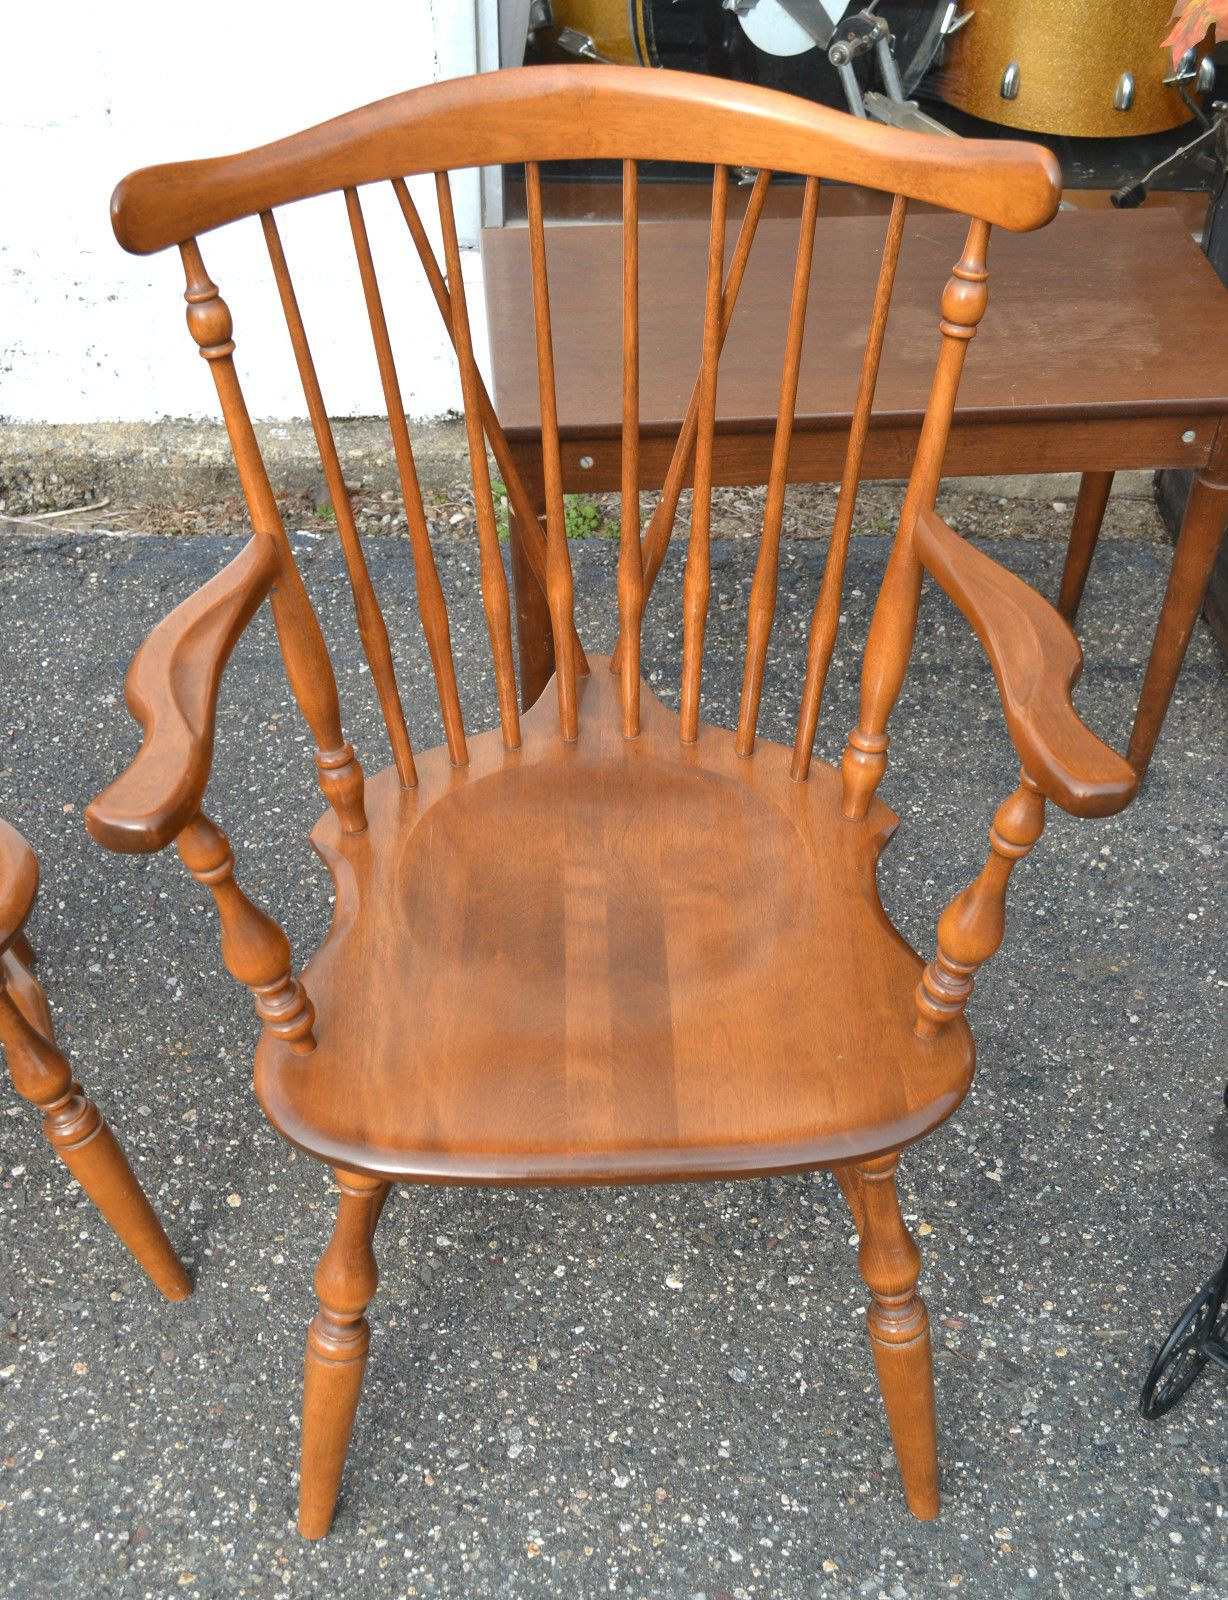 Set Of Four In The Main House. Ethan Allen Early American Birch Maple  Diningroom Style Arm Chair | EBay